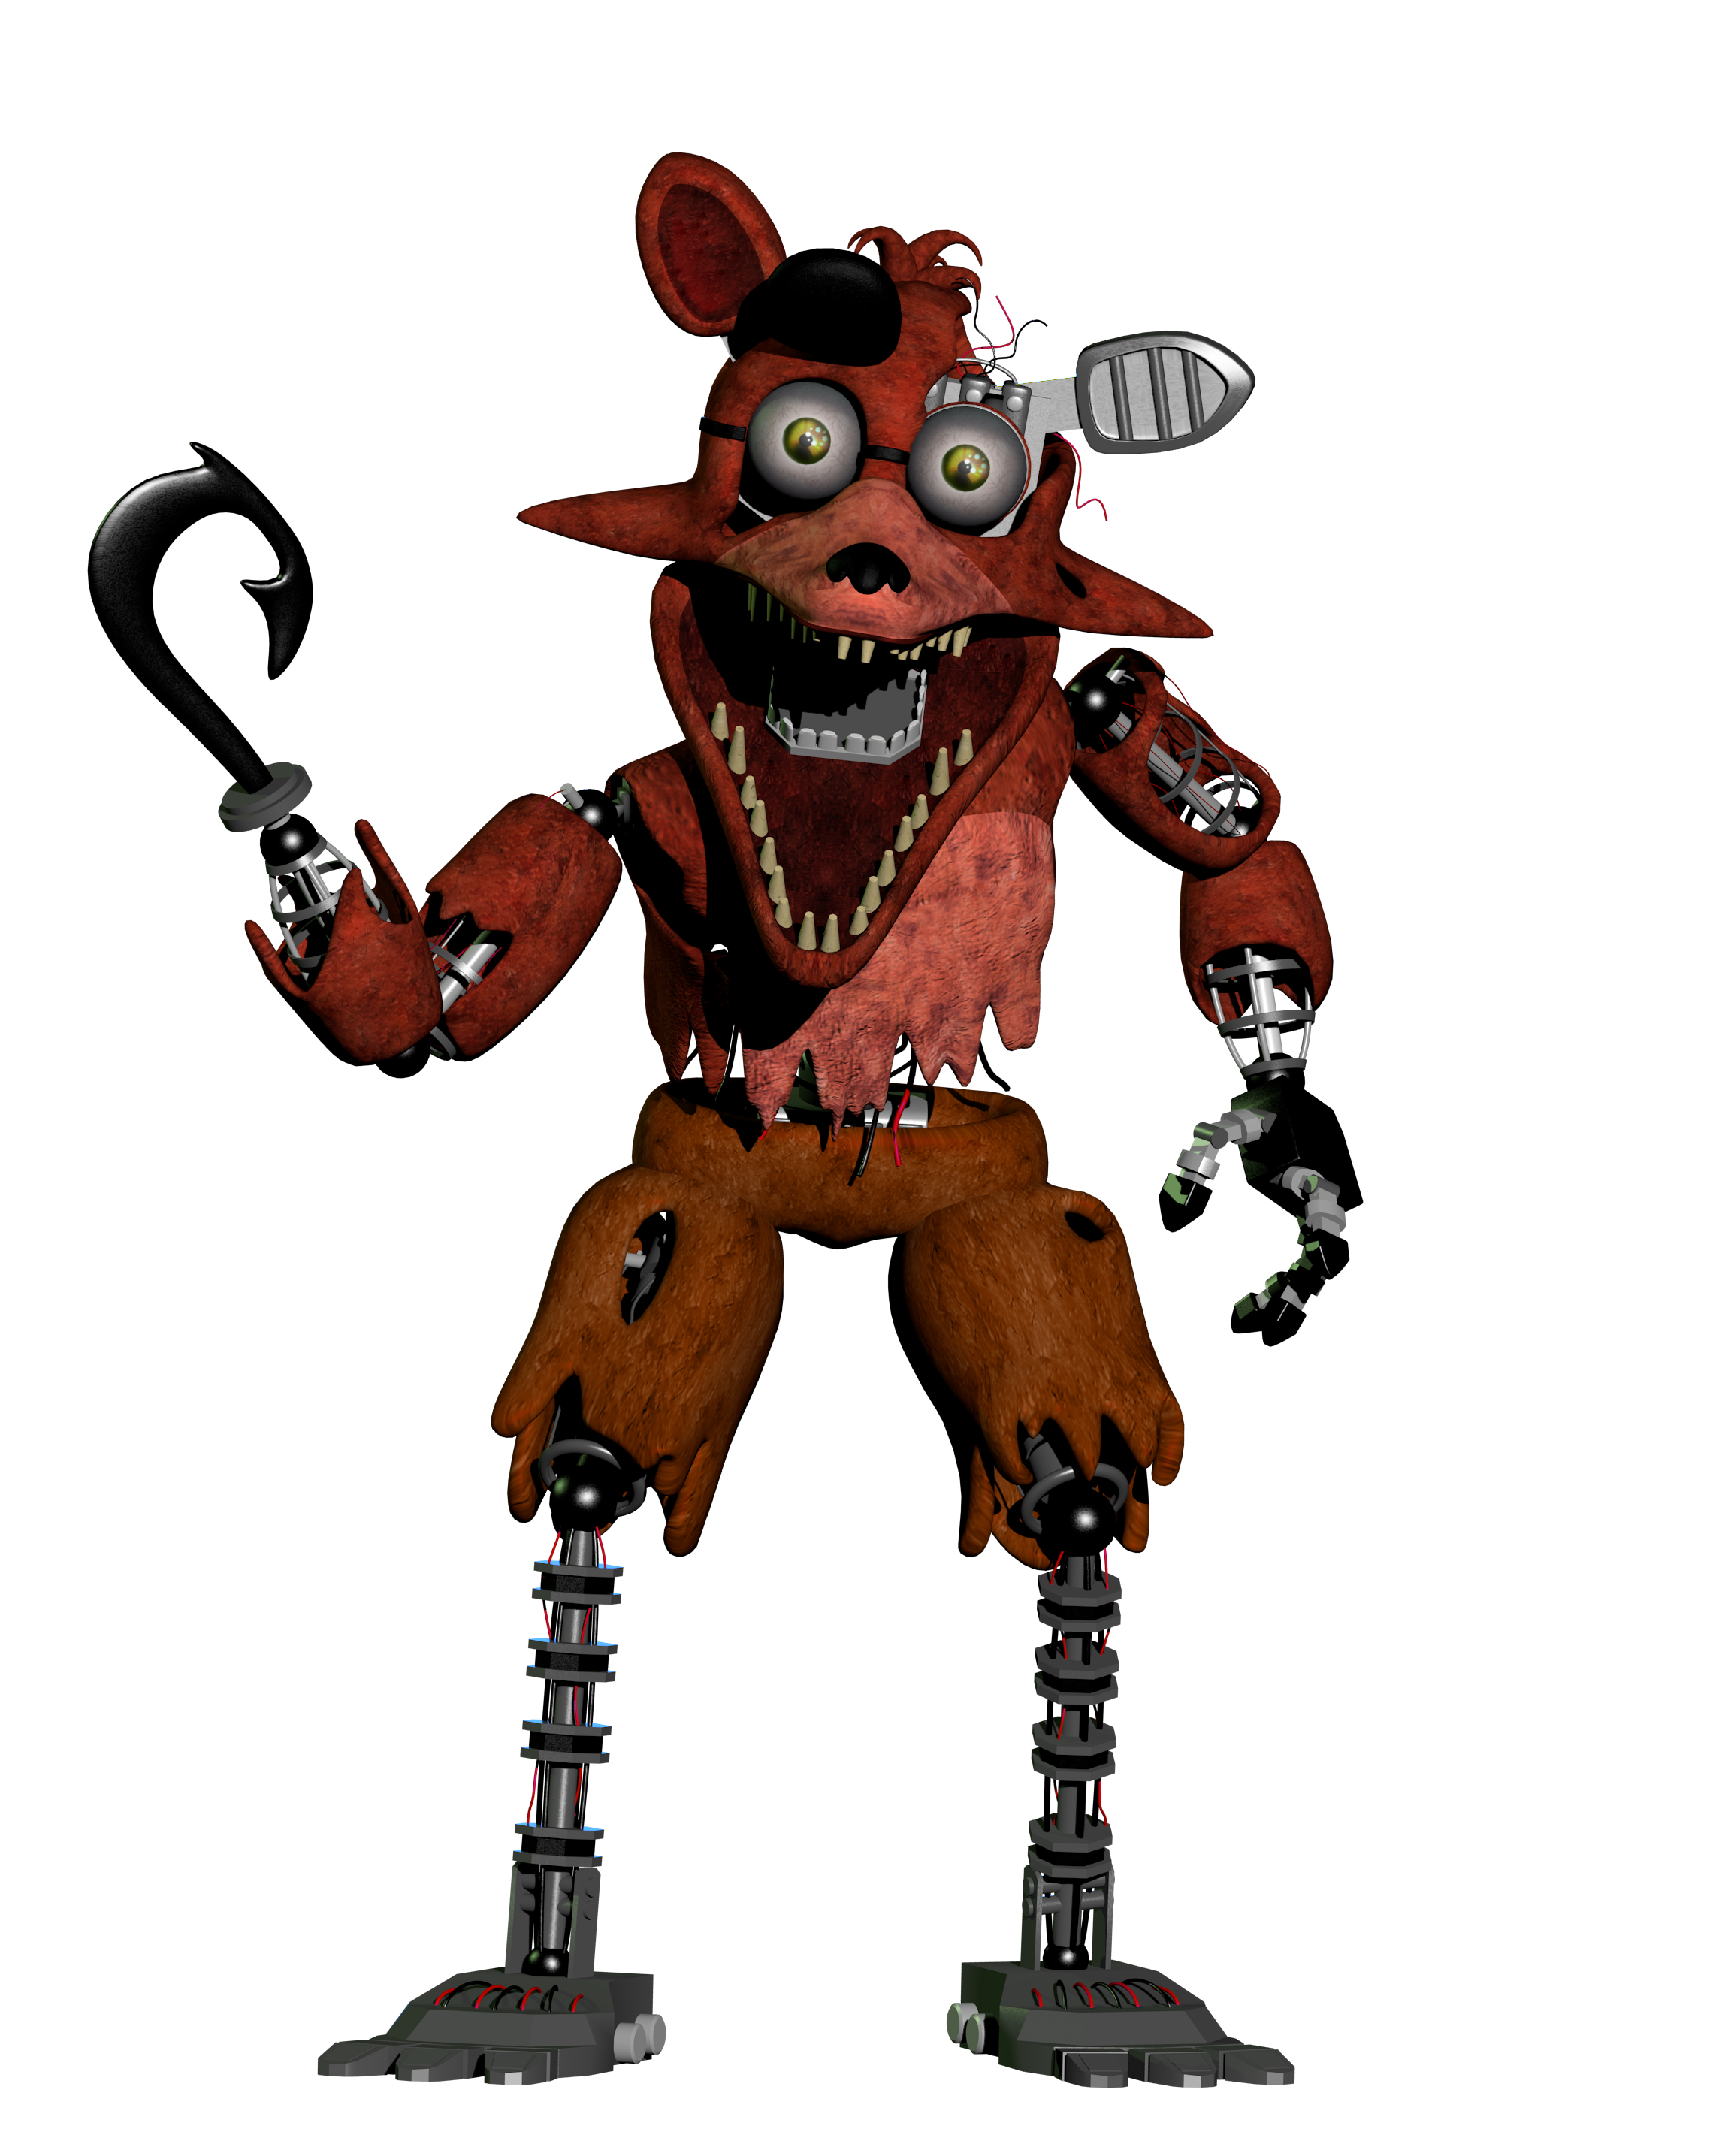 Stylized Withered Foxy By AustinTheBear On DeviantArt